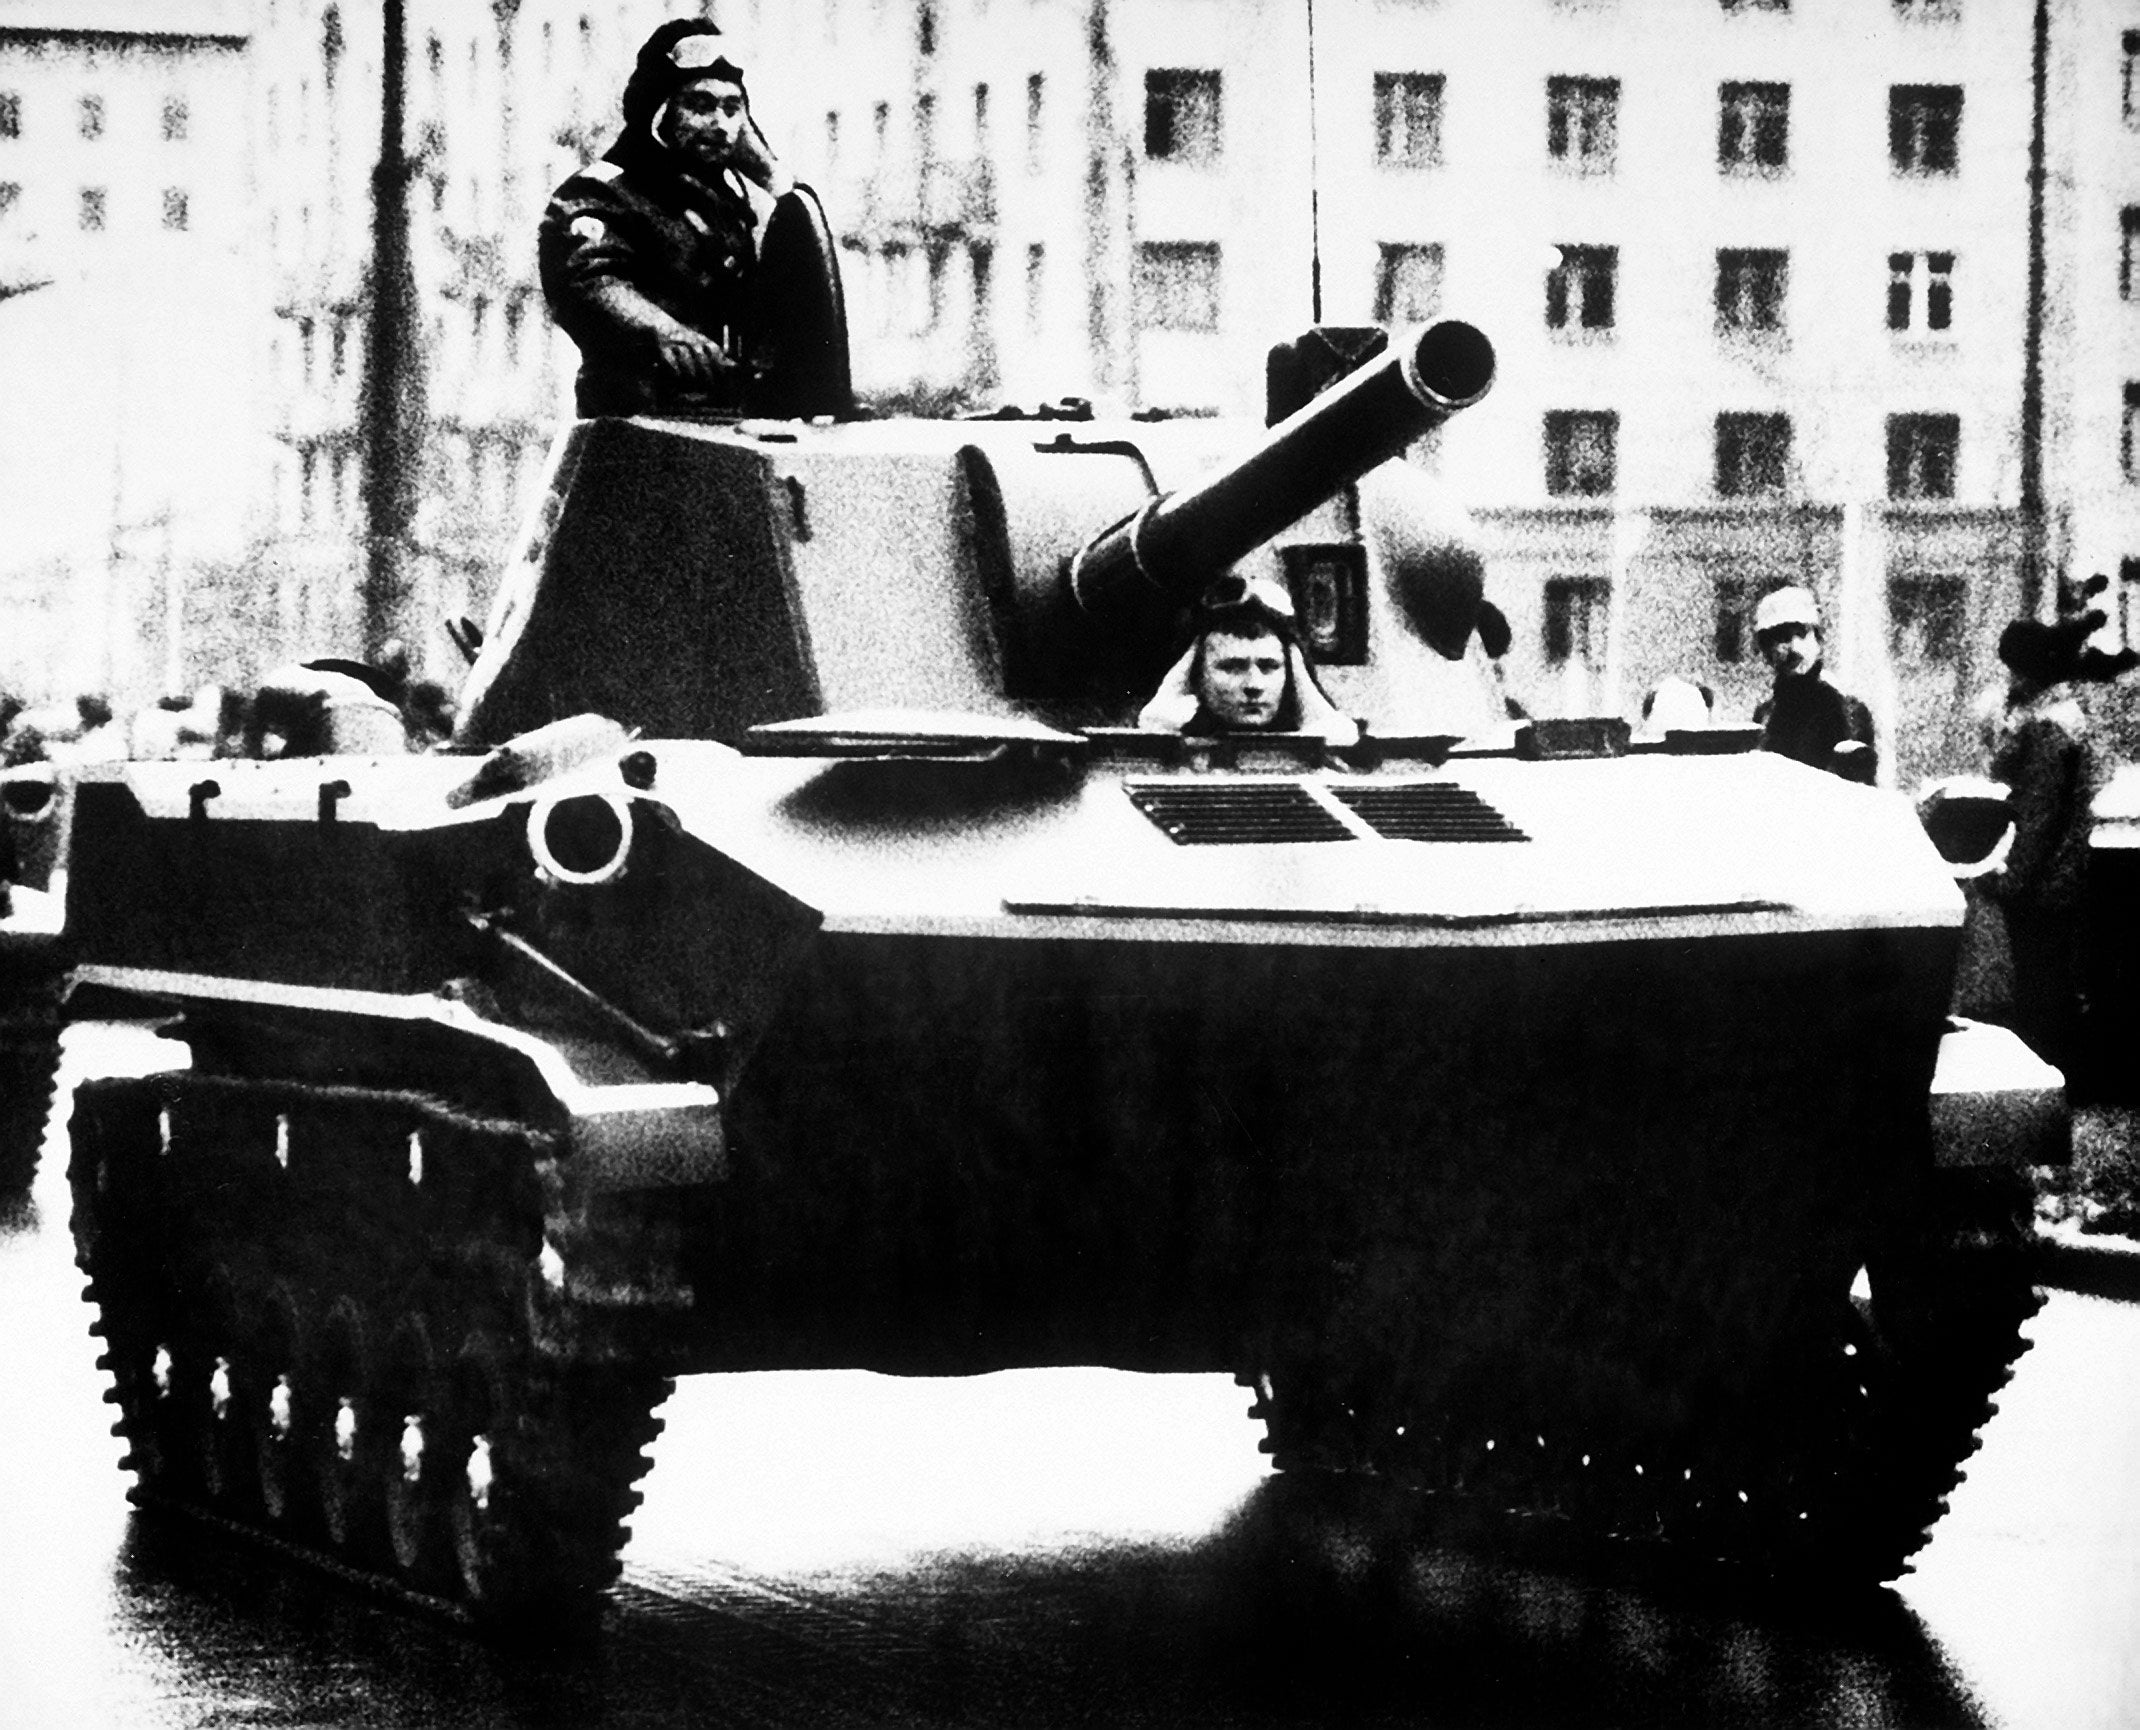 The Soviet Union also made an airborne armored personnel carrier